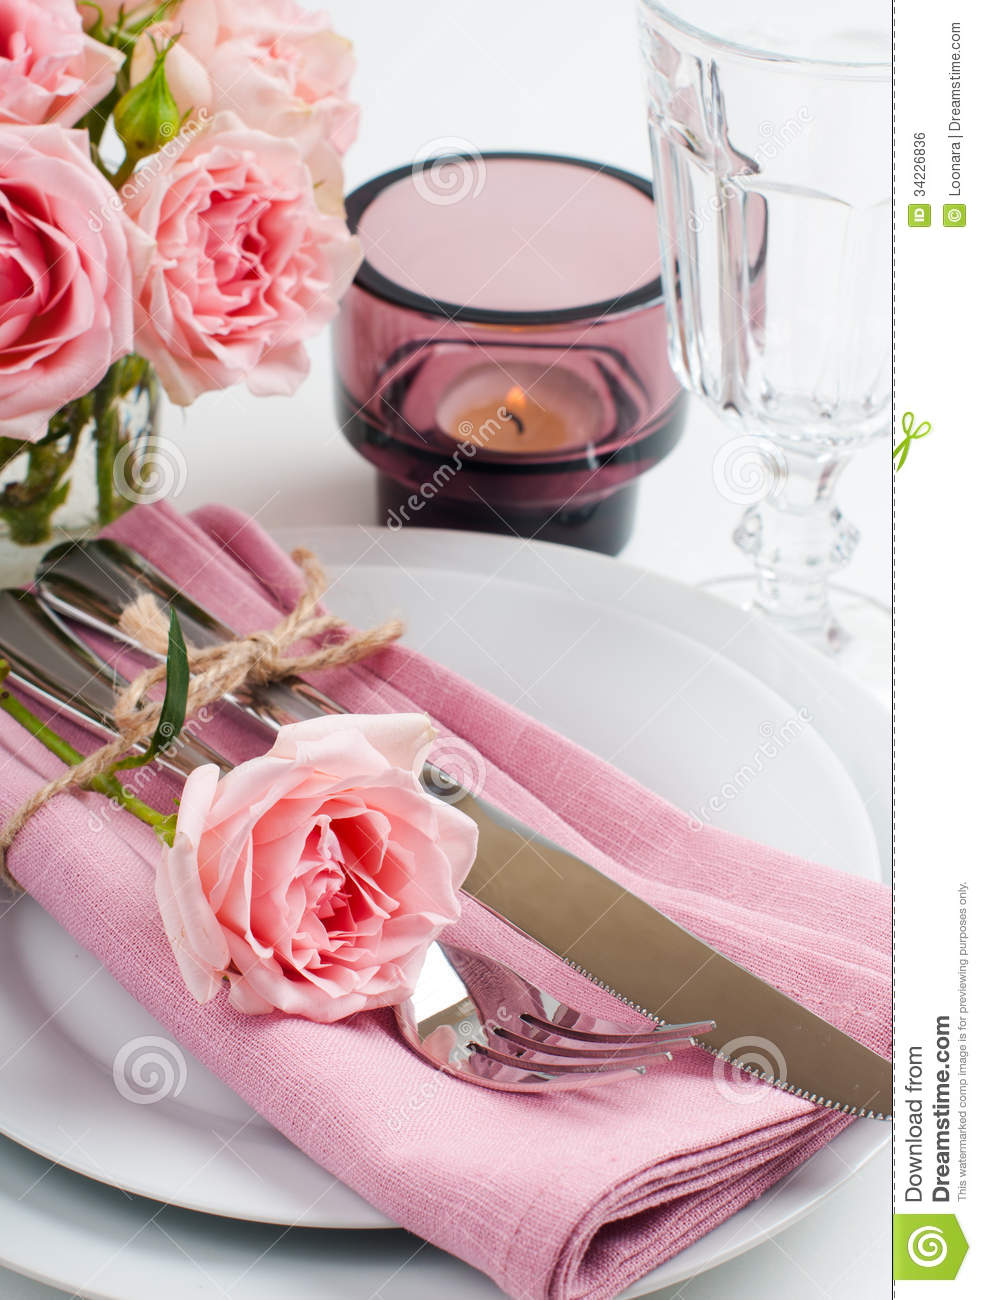 Beautiful festive table setting with roses royalty free for Beauty on table